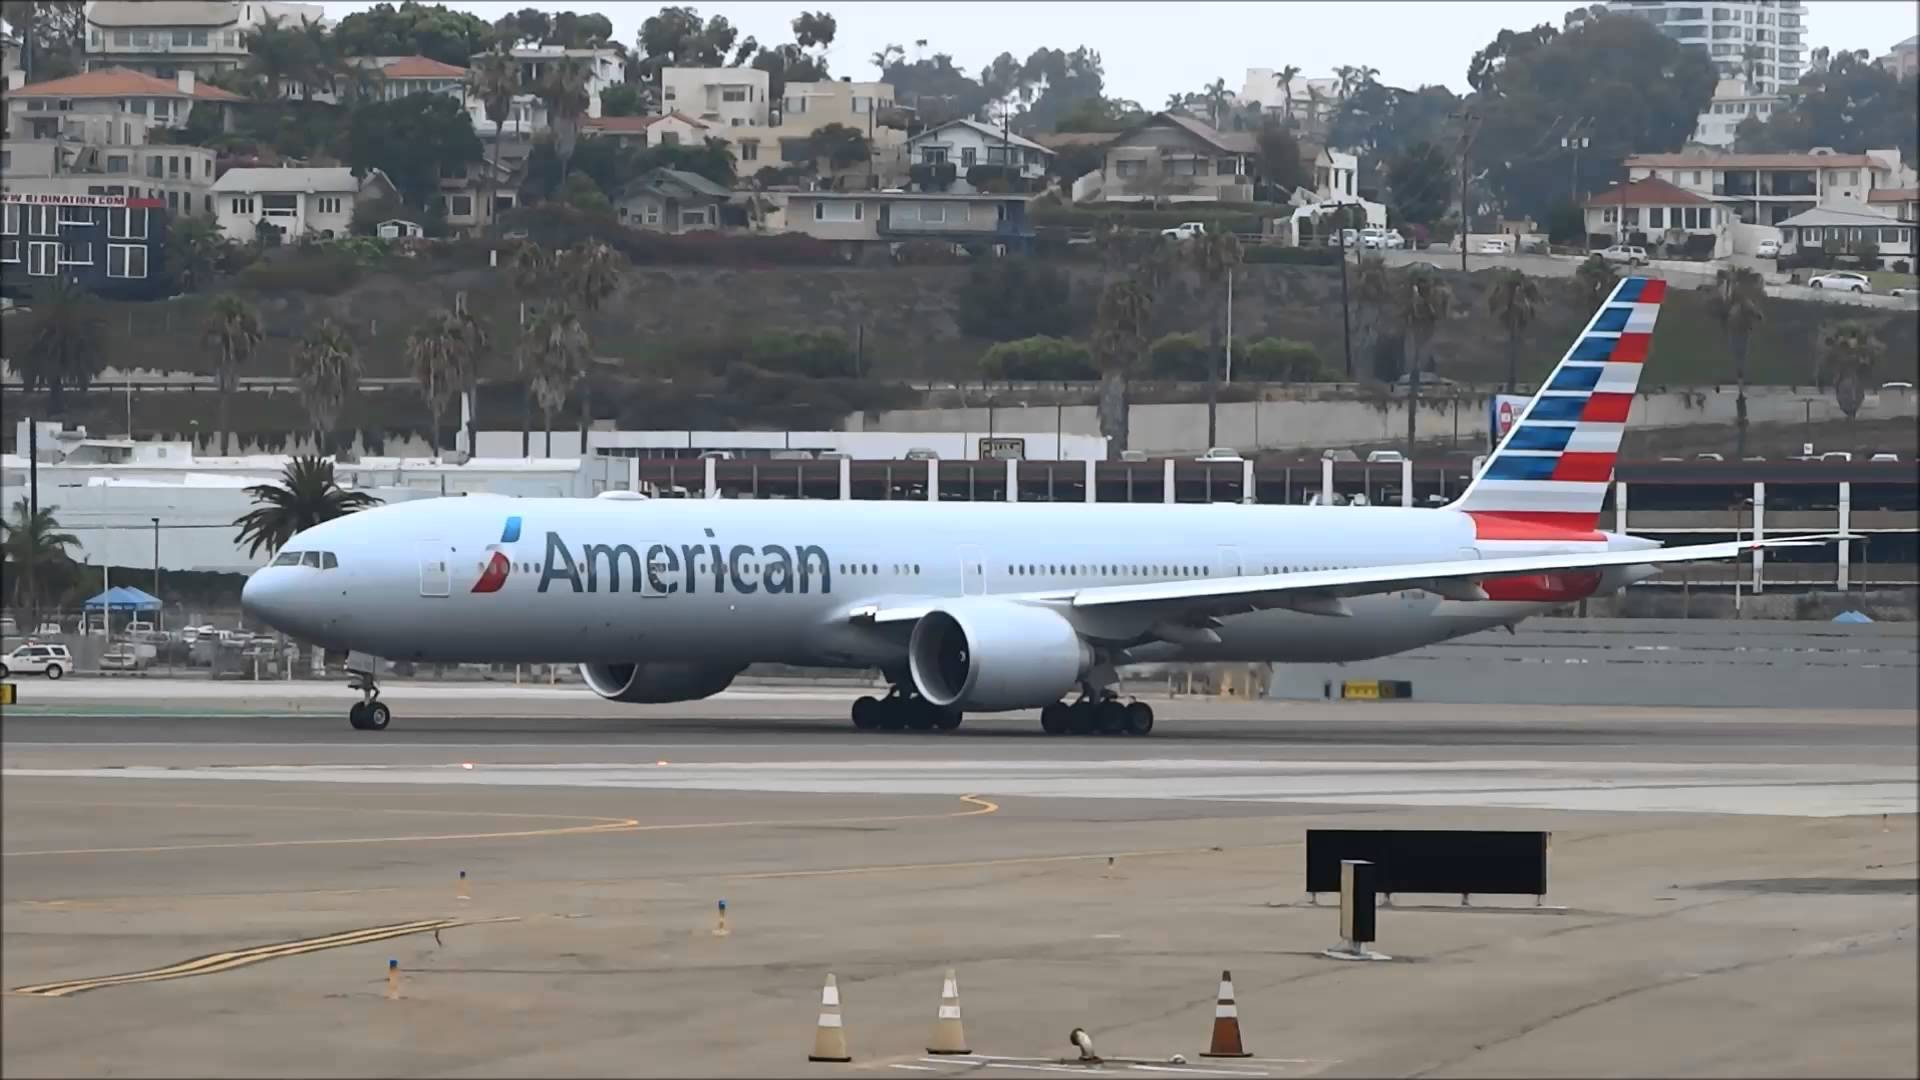 American Airlines Wallpapers 1180